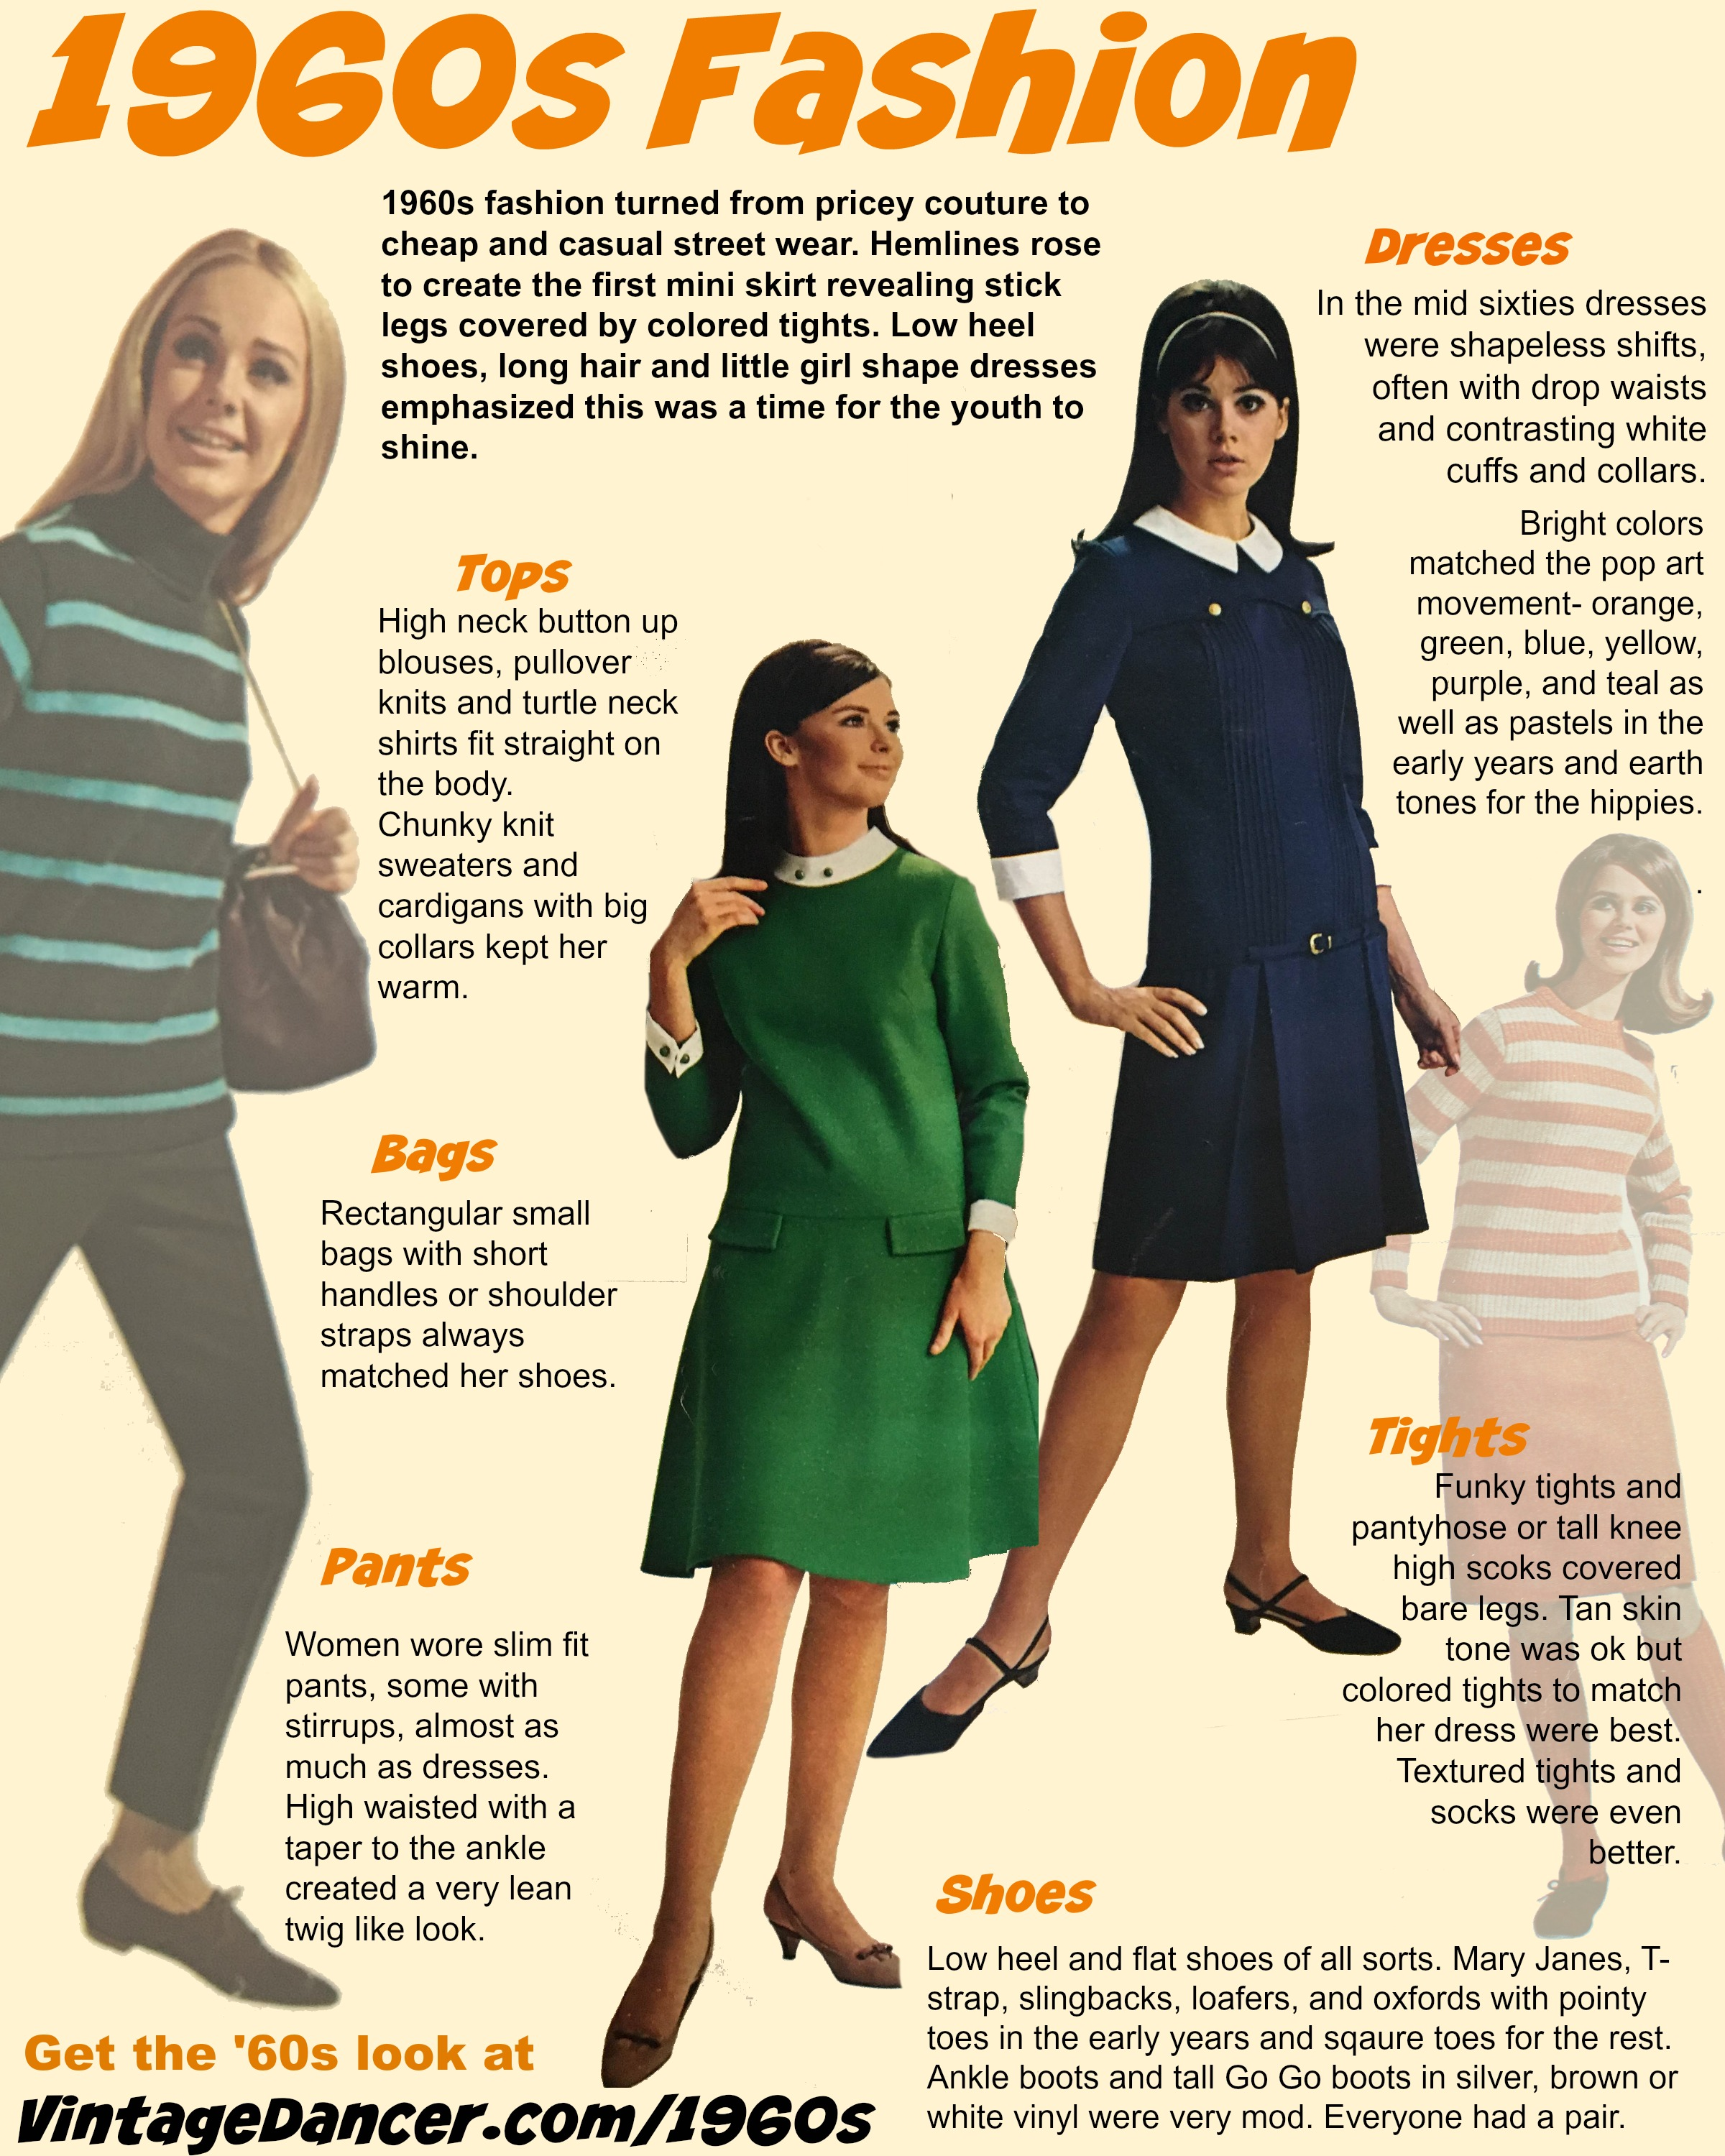 The best of 1960s fashion and the icons who helped shape it